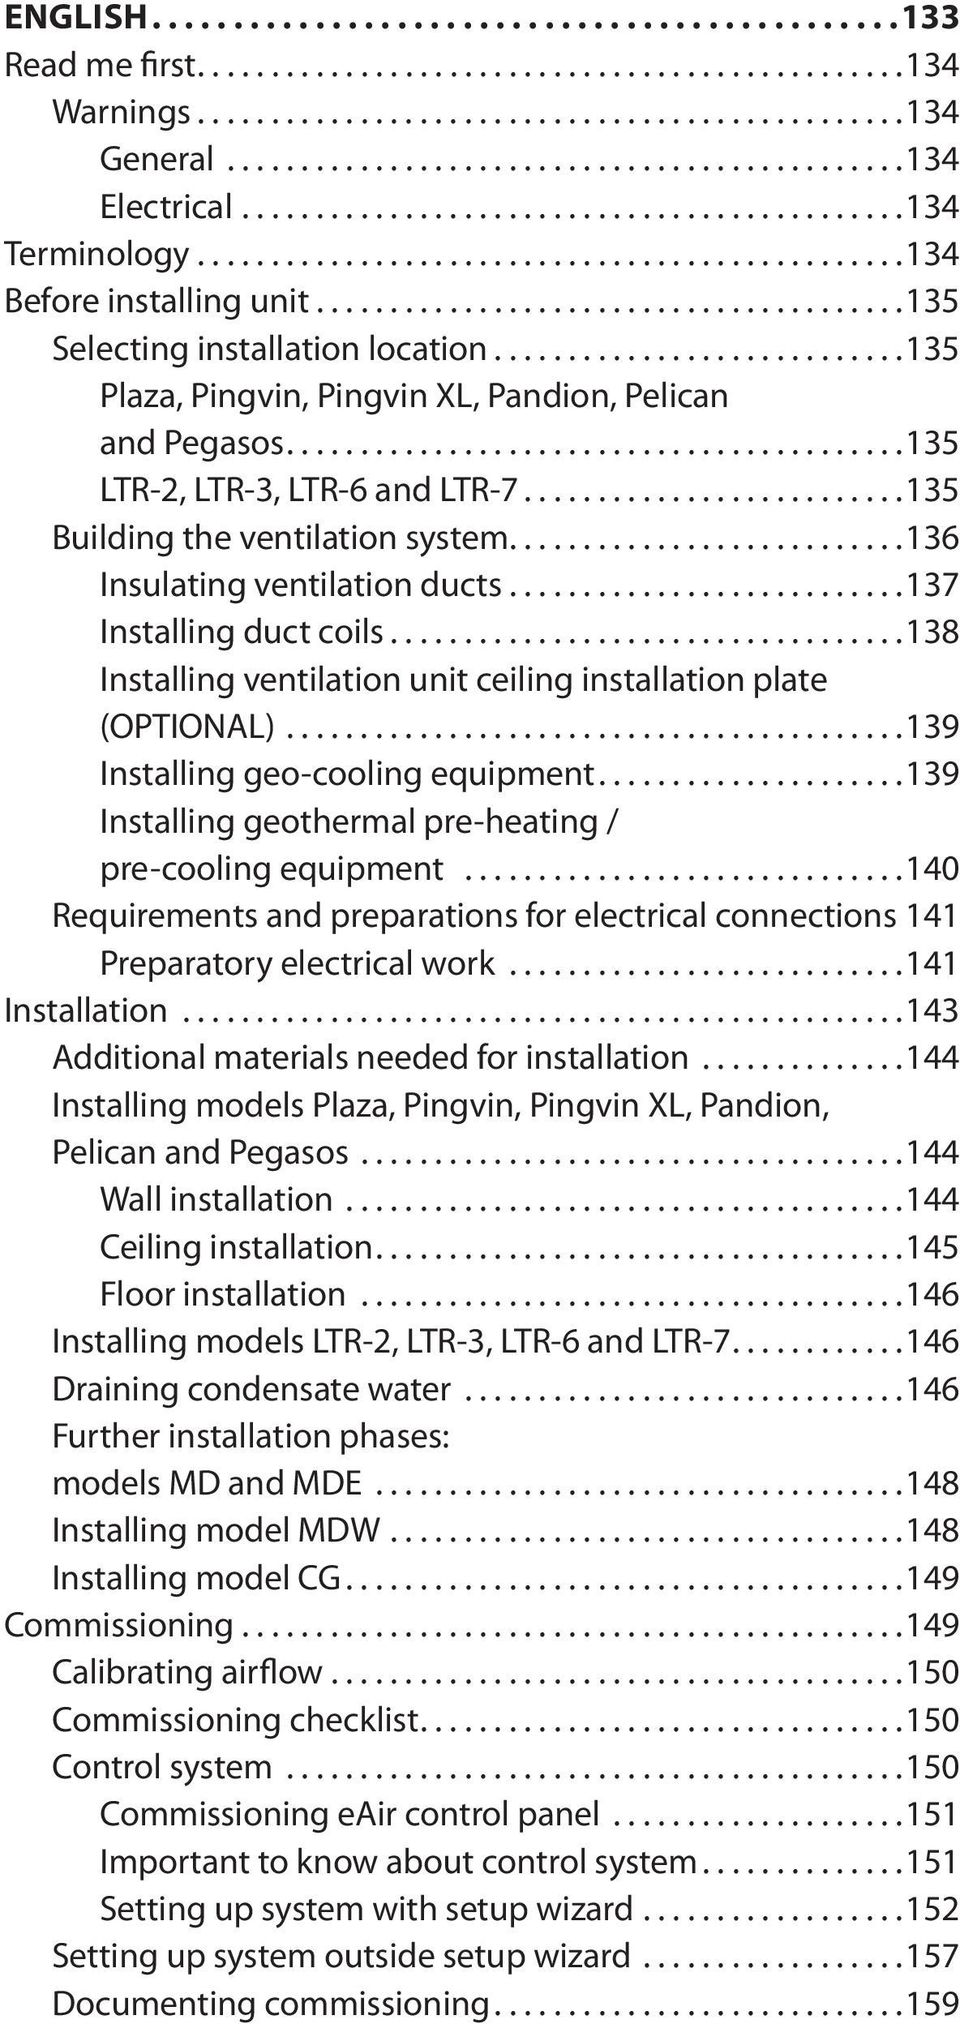 ..138 Installing ventilation unit ceiling installation plate (OPTIONAL)...139 Installing geo-cooling equipment...139 Installing geothermal pre-heating / pre-cooling equipment.